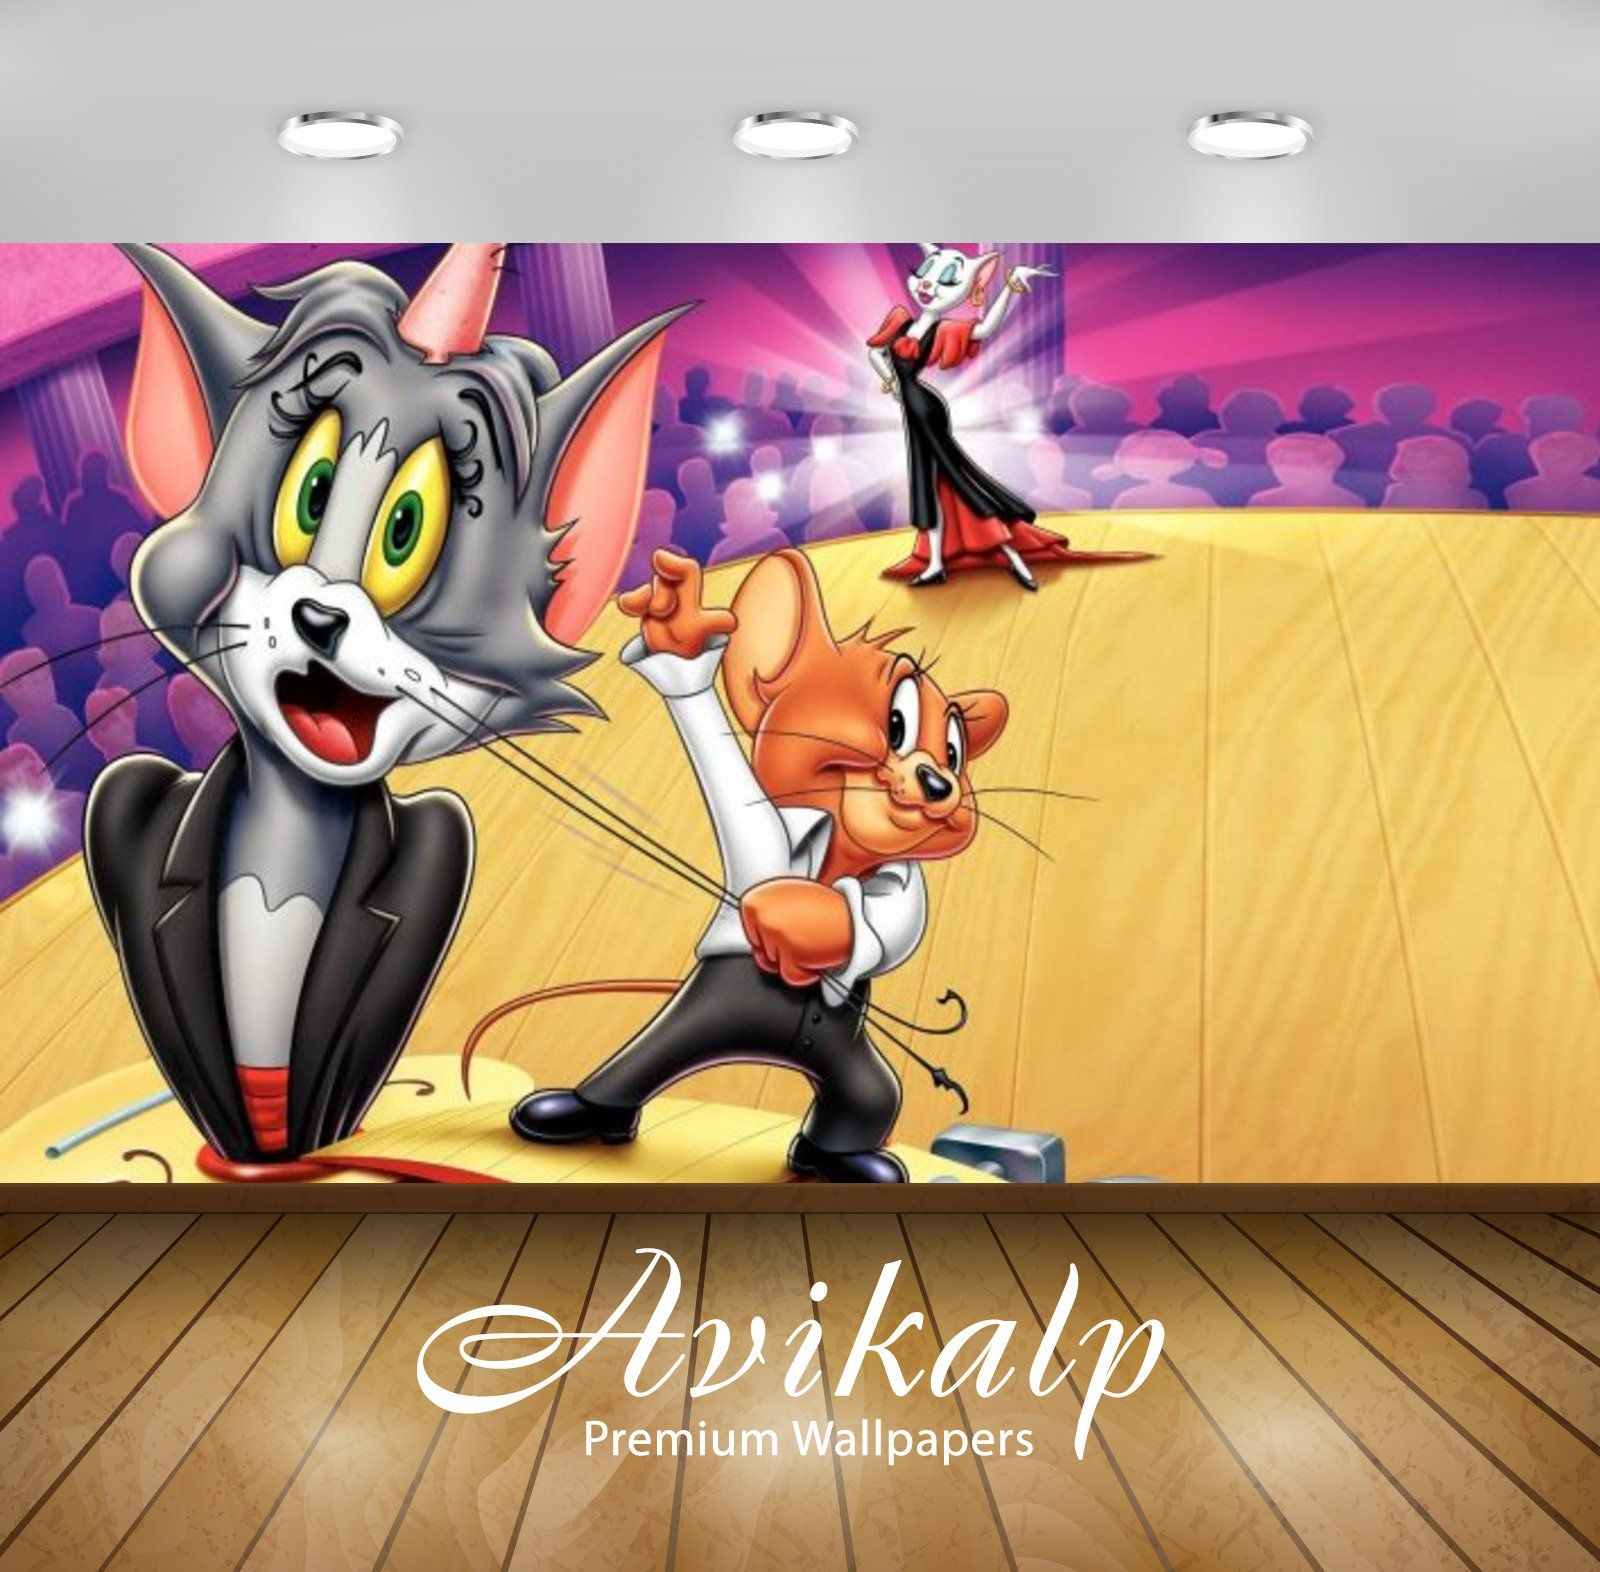 Avikalp Exclusive Awi2269 Tom And Jerry Magic Show Full Hd Wallpapers For Living Room Hall Kids Ro 3 Tom And Jerry Wallpapers Tom And Jerry Tom And Jerry Hd